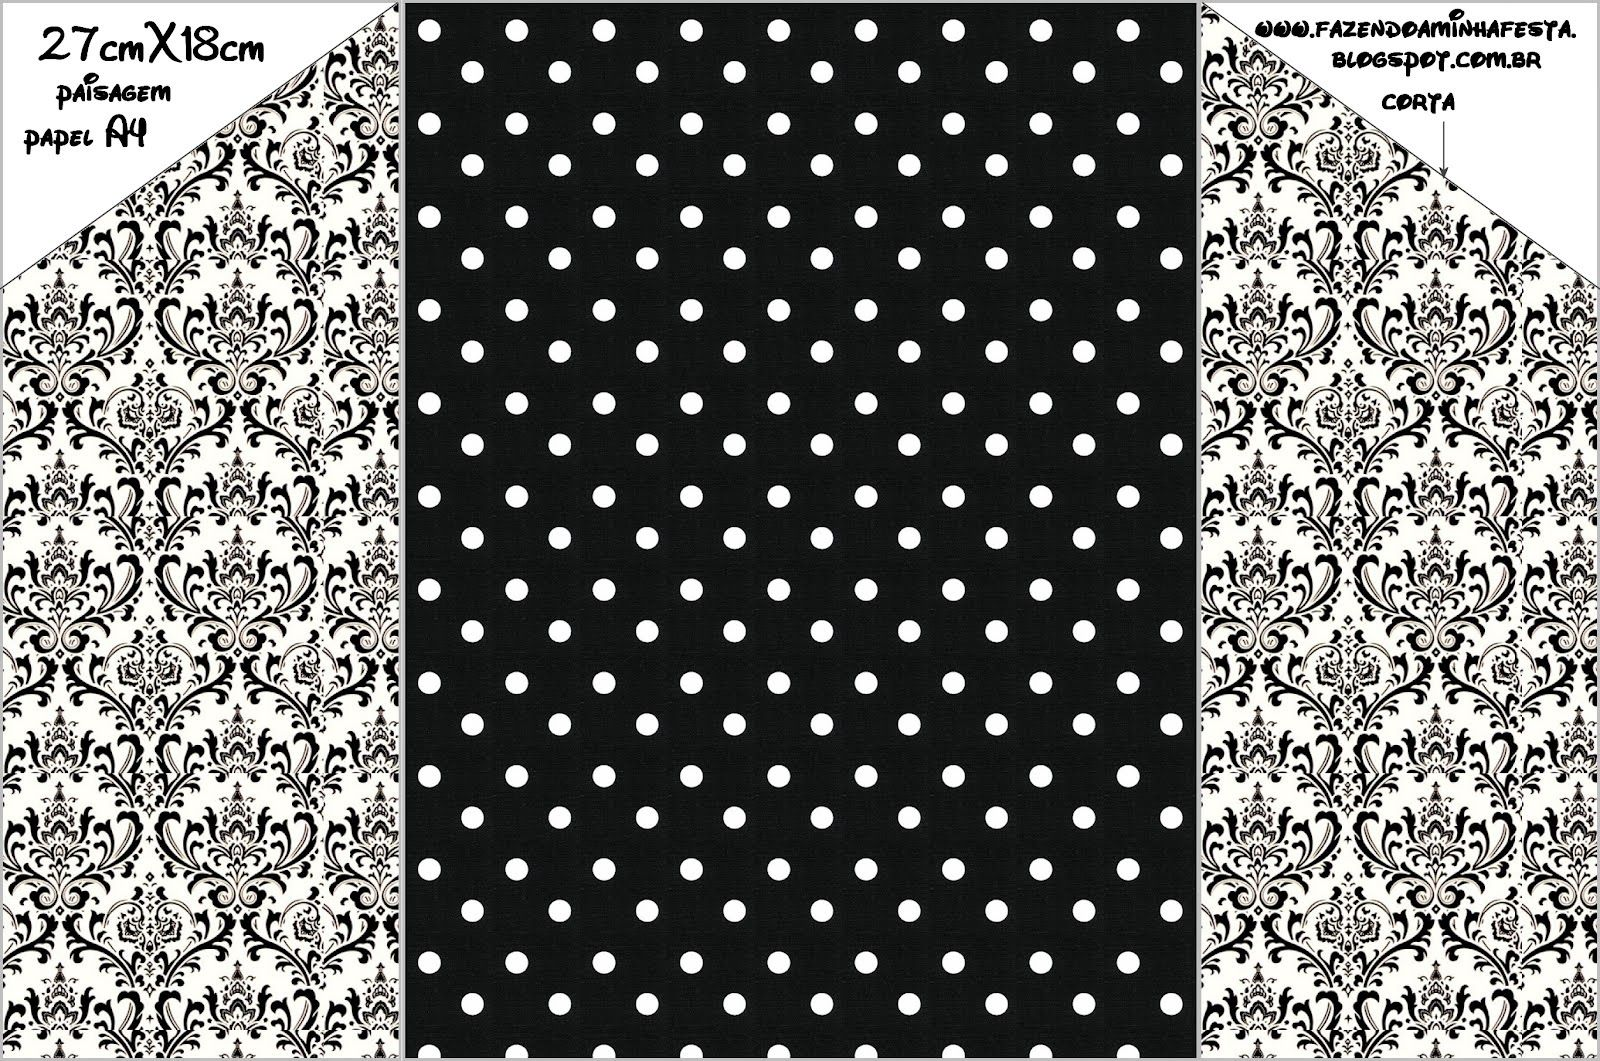 White and Black Damasks and Polka Dots: Free Printable Envelope and Invitation for Weddings. | Oh My Fiesta Wedding!